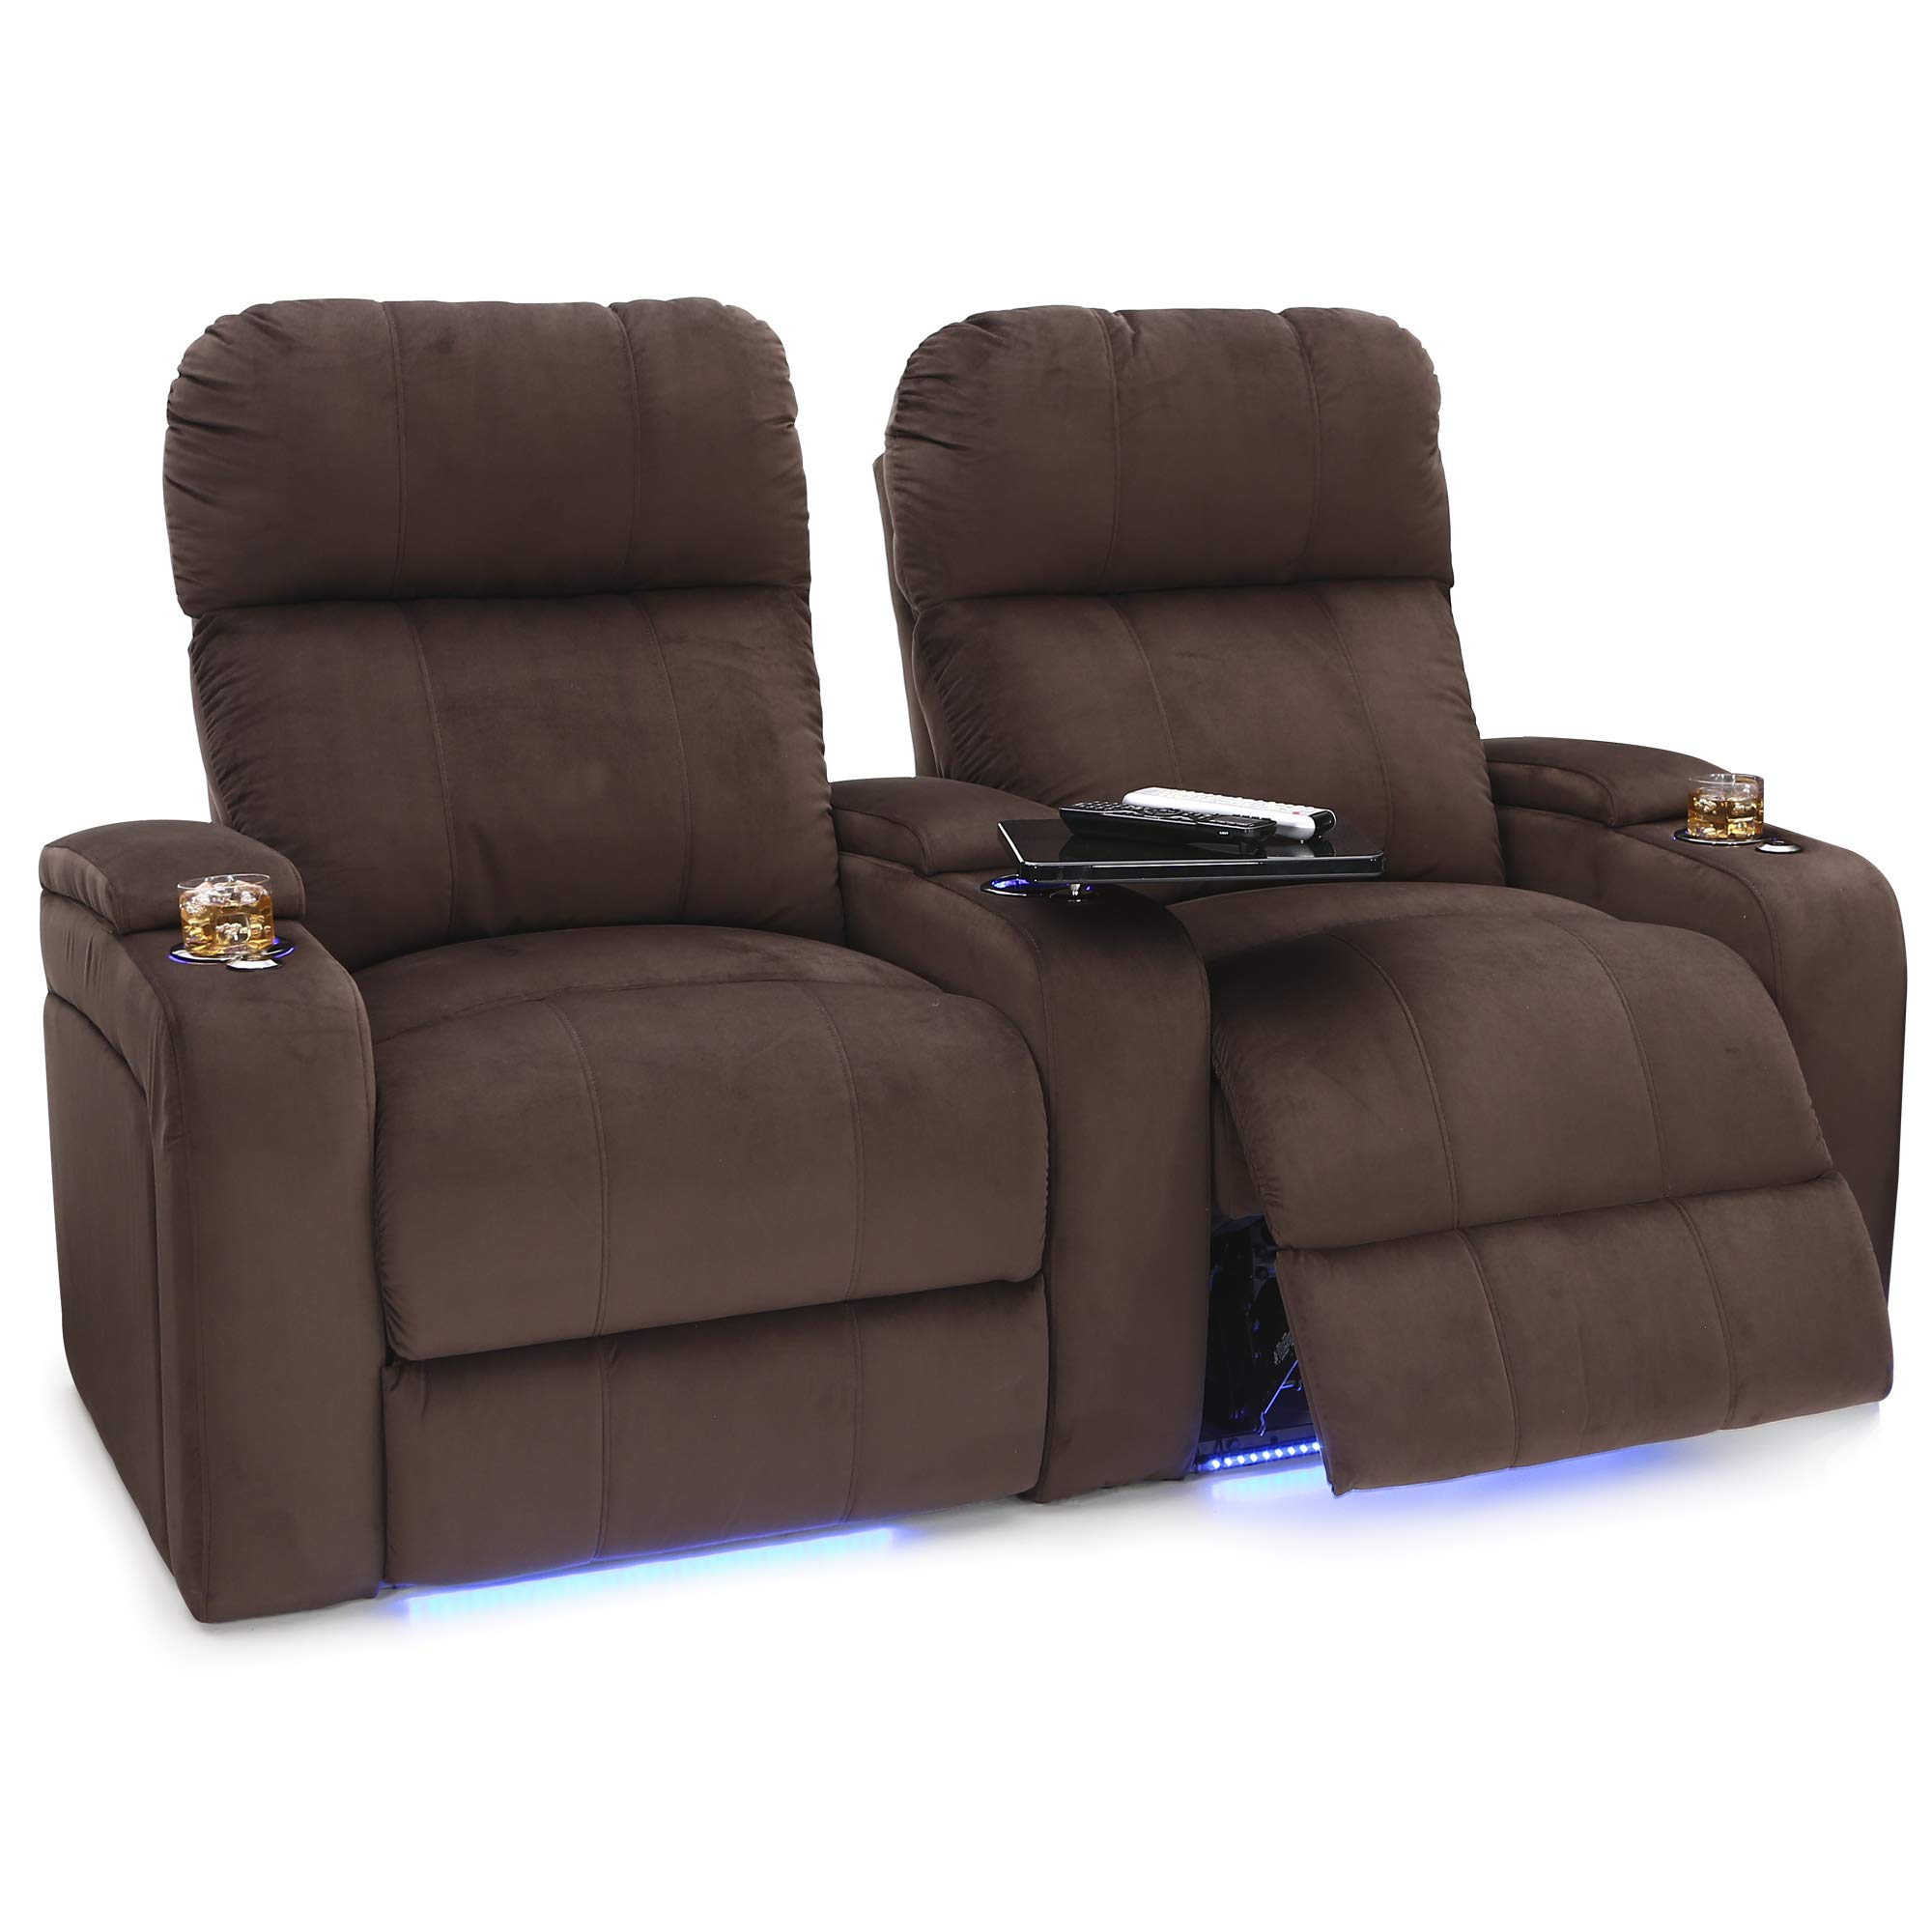 Seatcraft Bonita Home Theater Seating Bella Fabric Power Recline with Adjustable Powered Headrest, in-Arm Storage, USB Charging, Swivel Tray Tables, Lighted Cup Holders and Base, Row of 2, Brown by Seatcraft